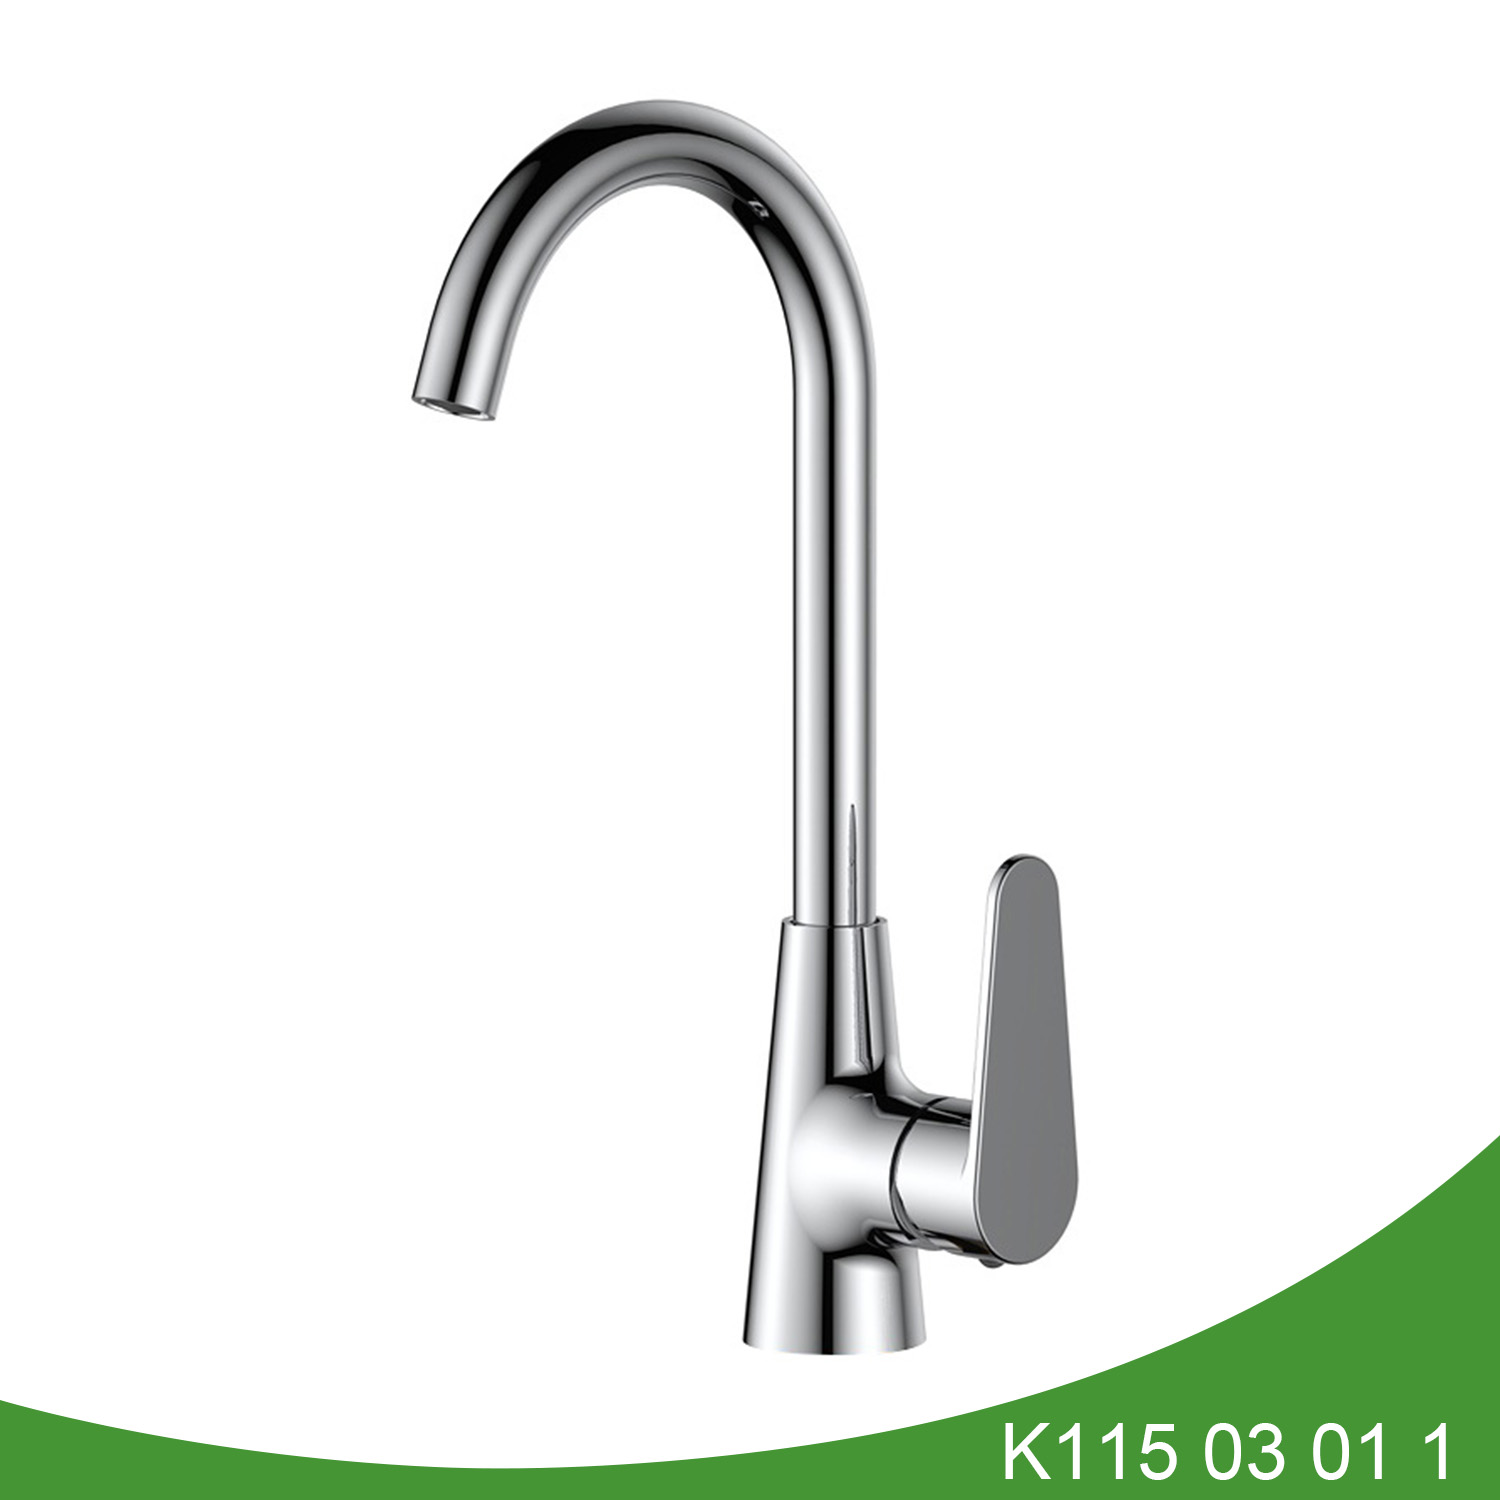 Single handle kitchen tap K115 03 01 1